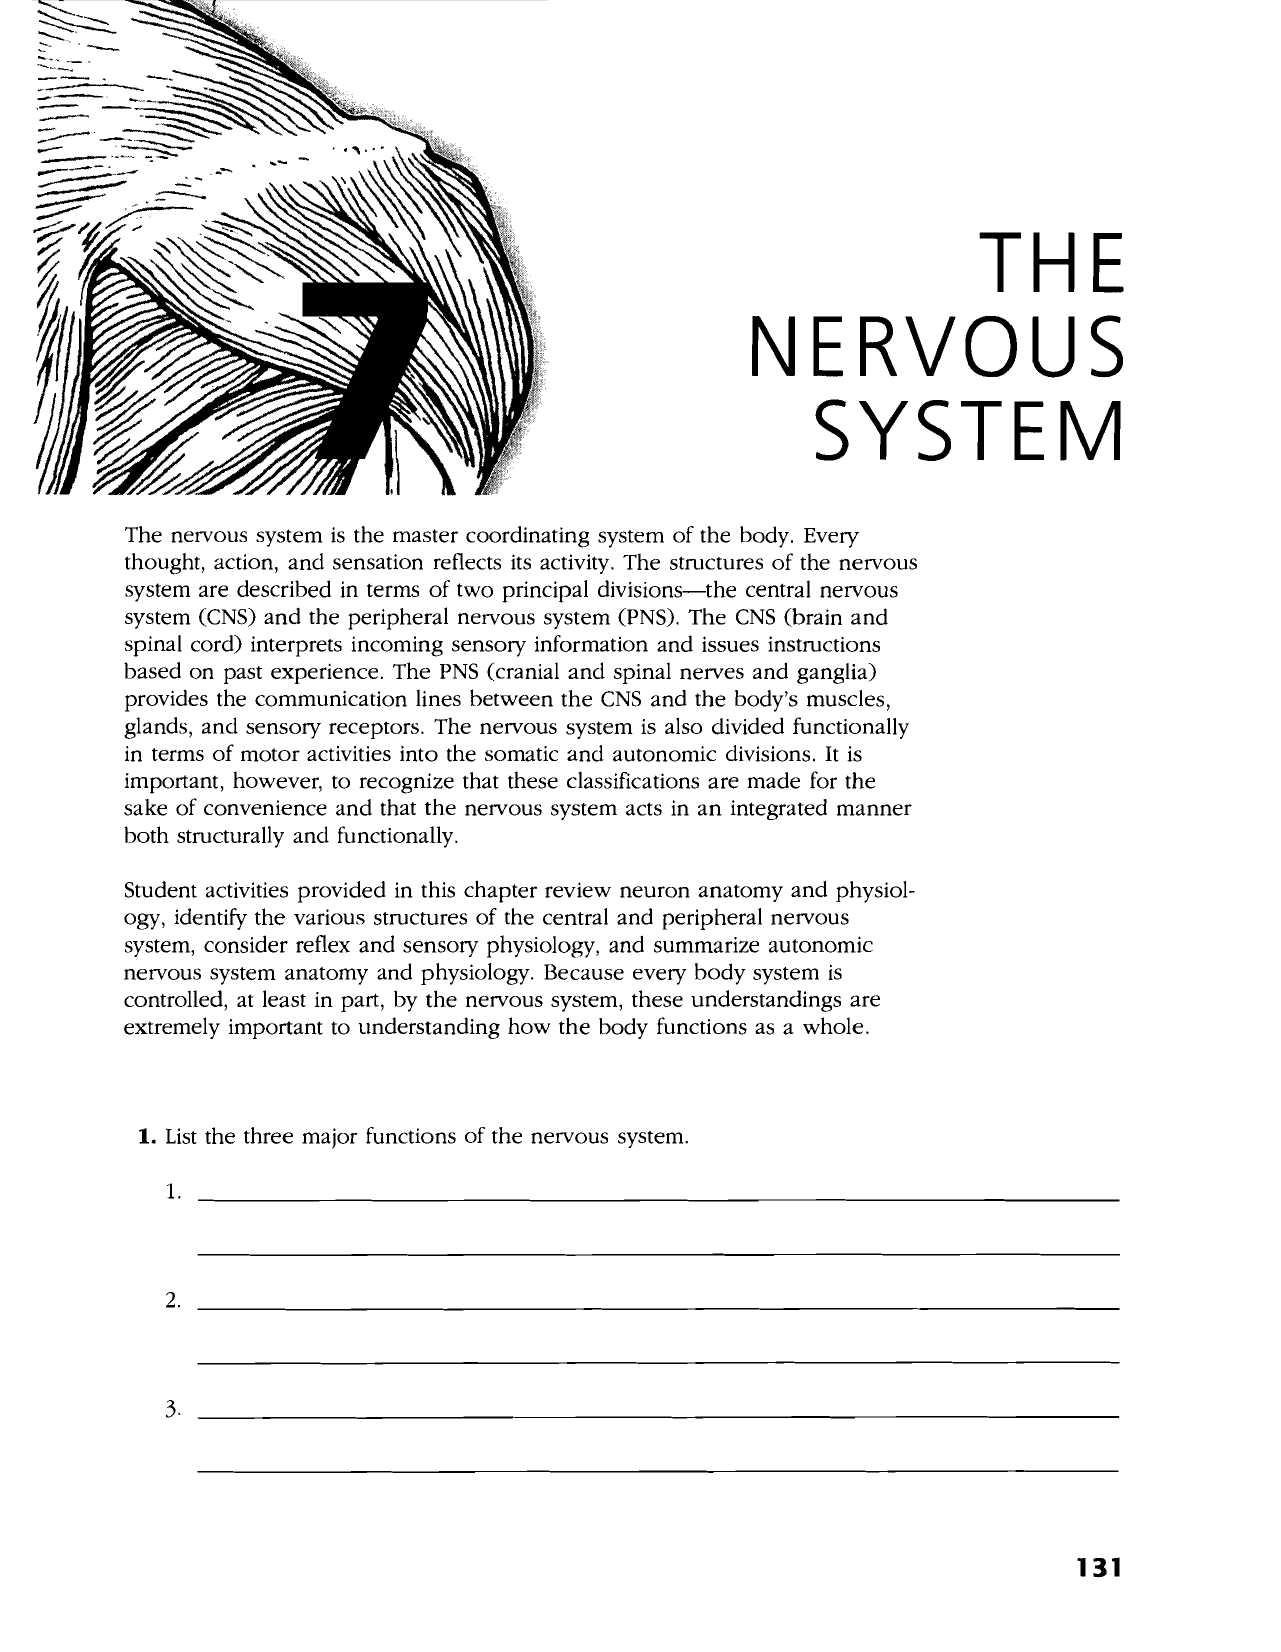 Human Anatomy And Physiology Nervous System Worksheet